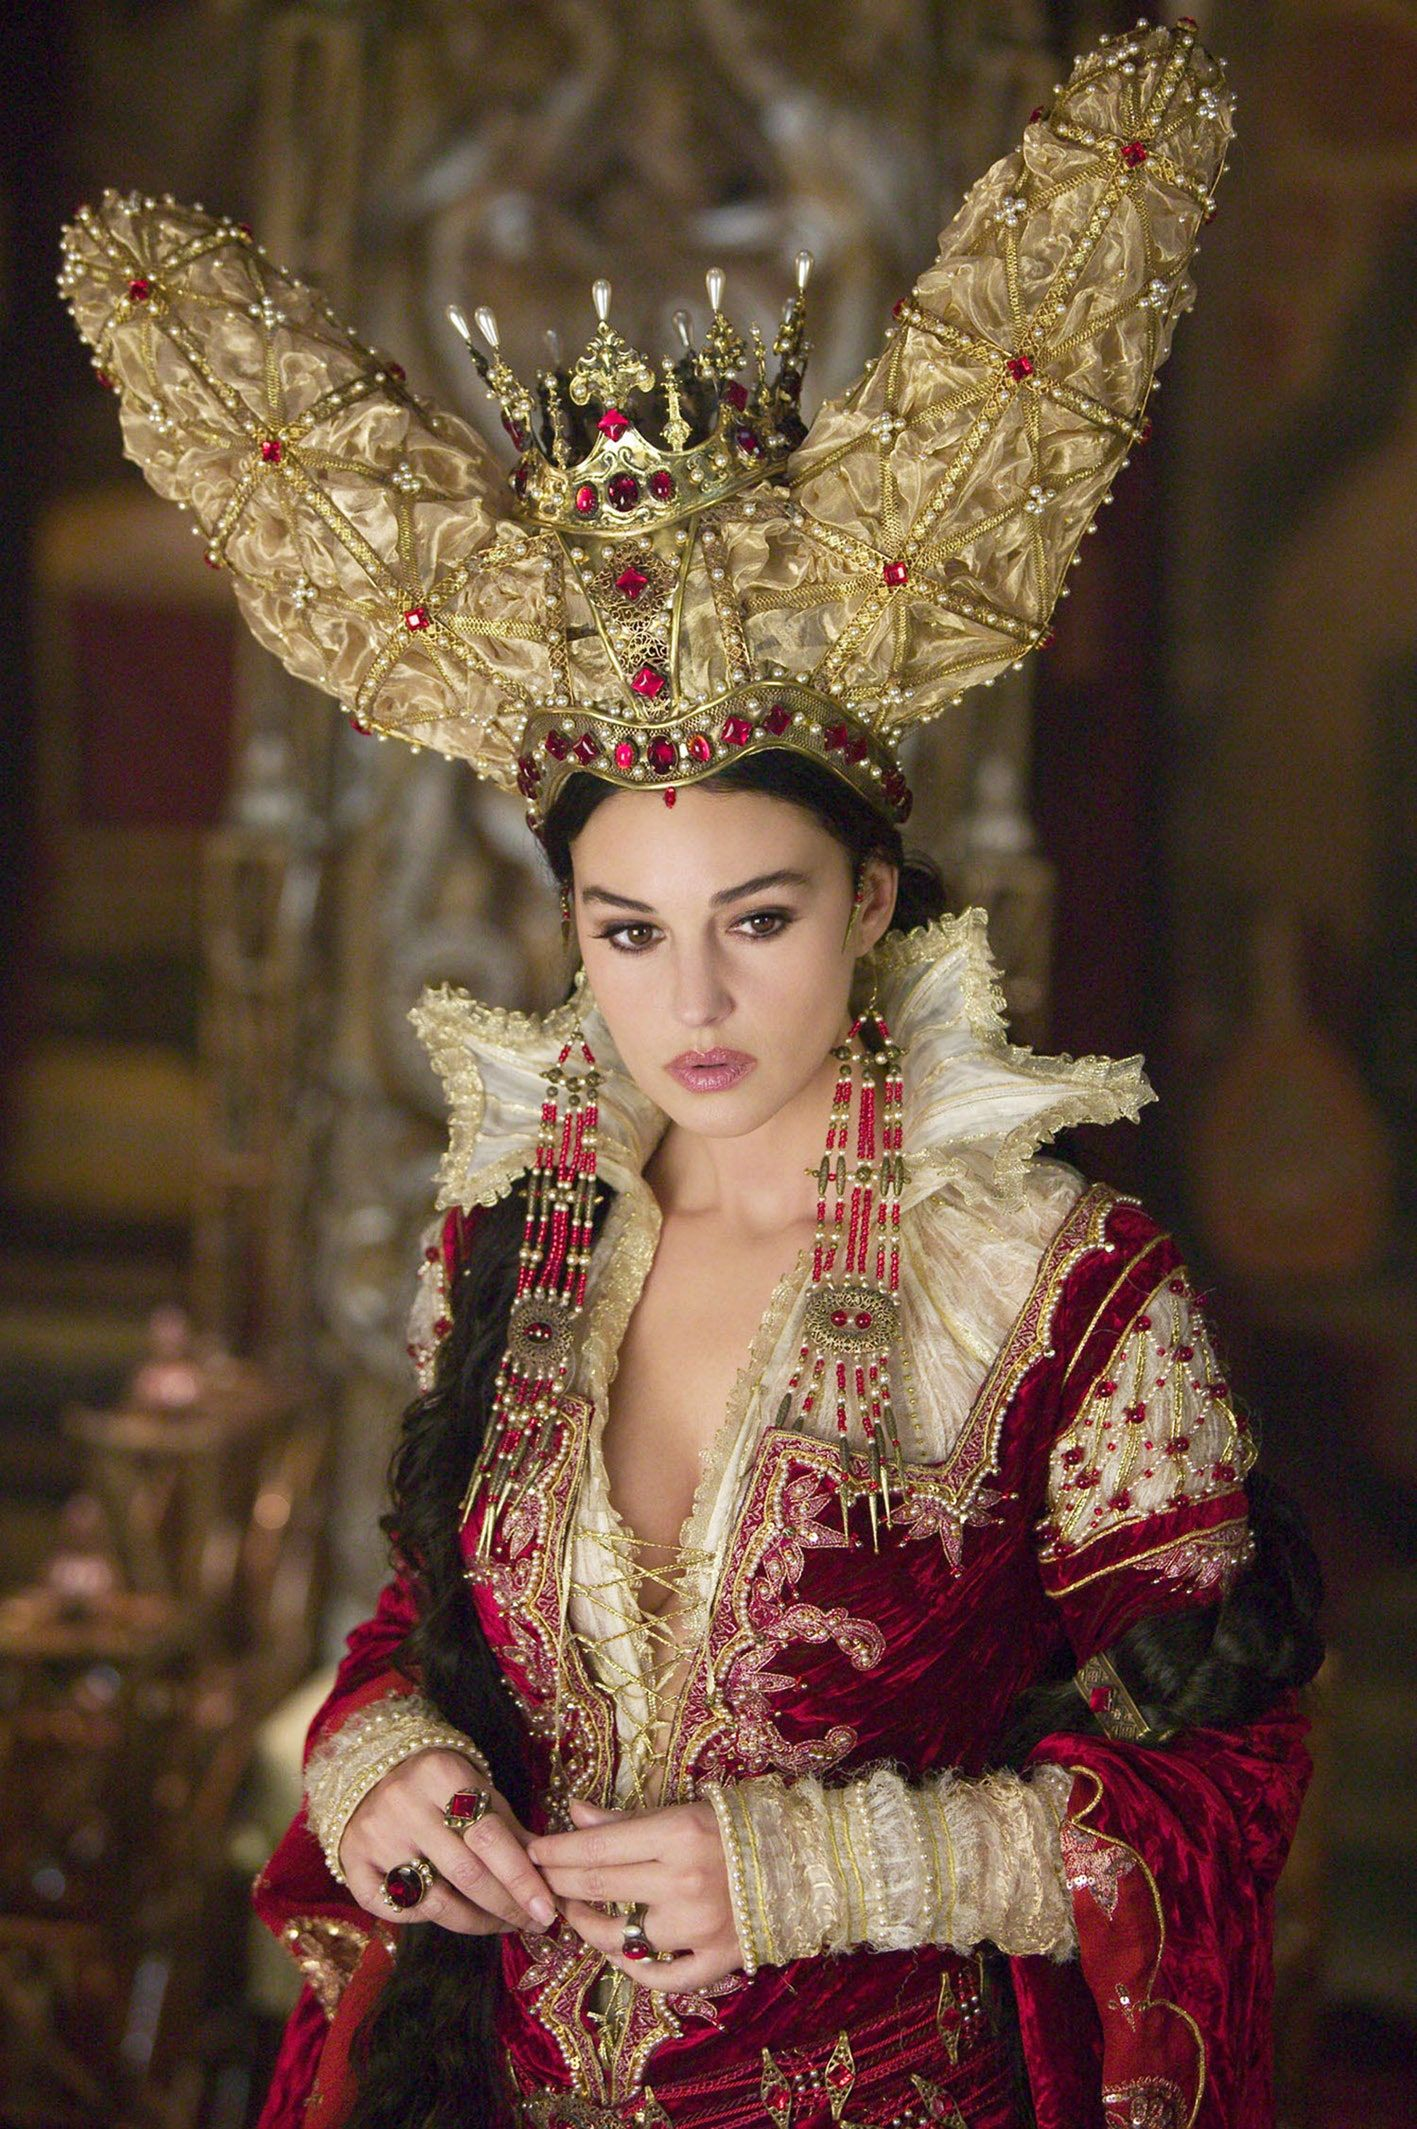 Monica Bellucci in The Brothers Grimm by Terry Gilliam